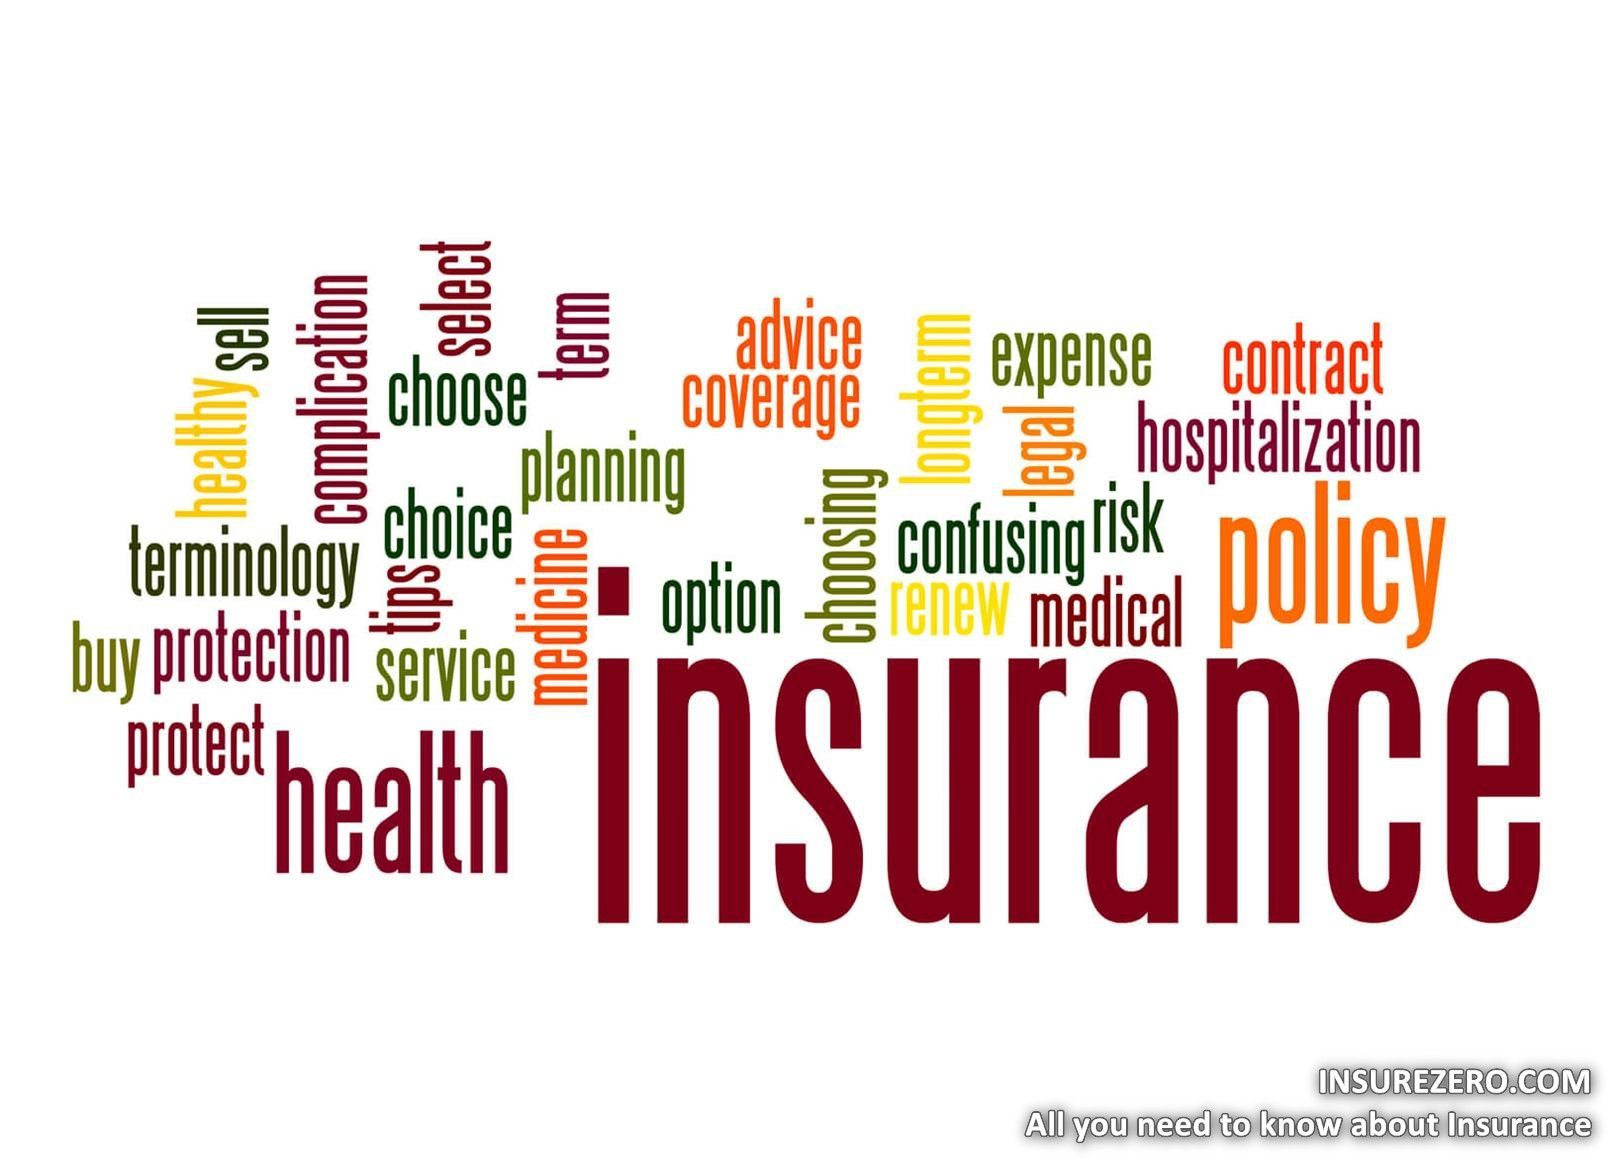 Digital Nomad Guide 101: Travel and Health Insurance ...